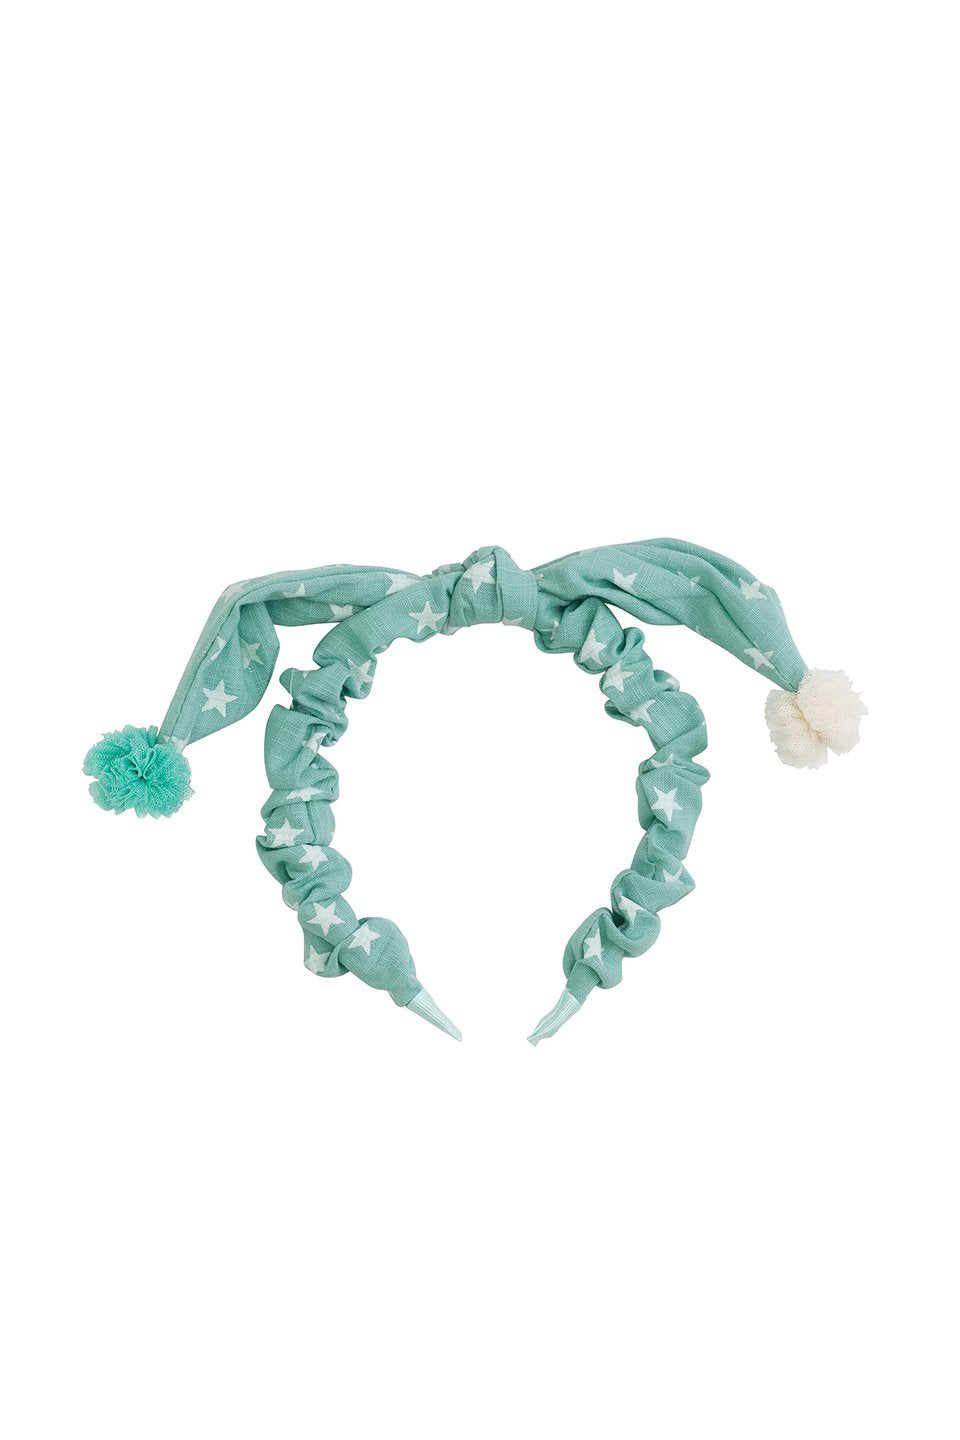 Sweet Dreams Headband - Teal Star - PROJECT 6, modest fashion